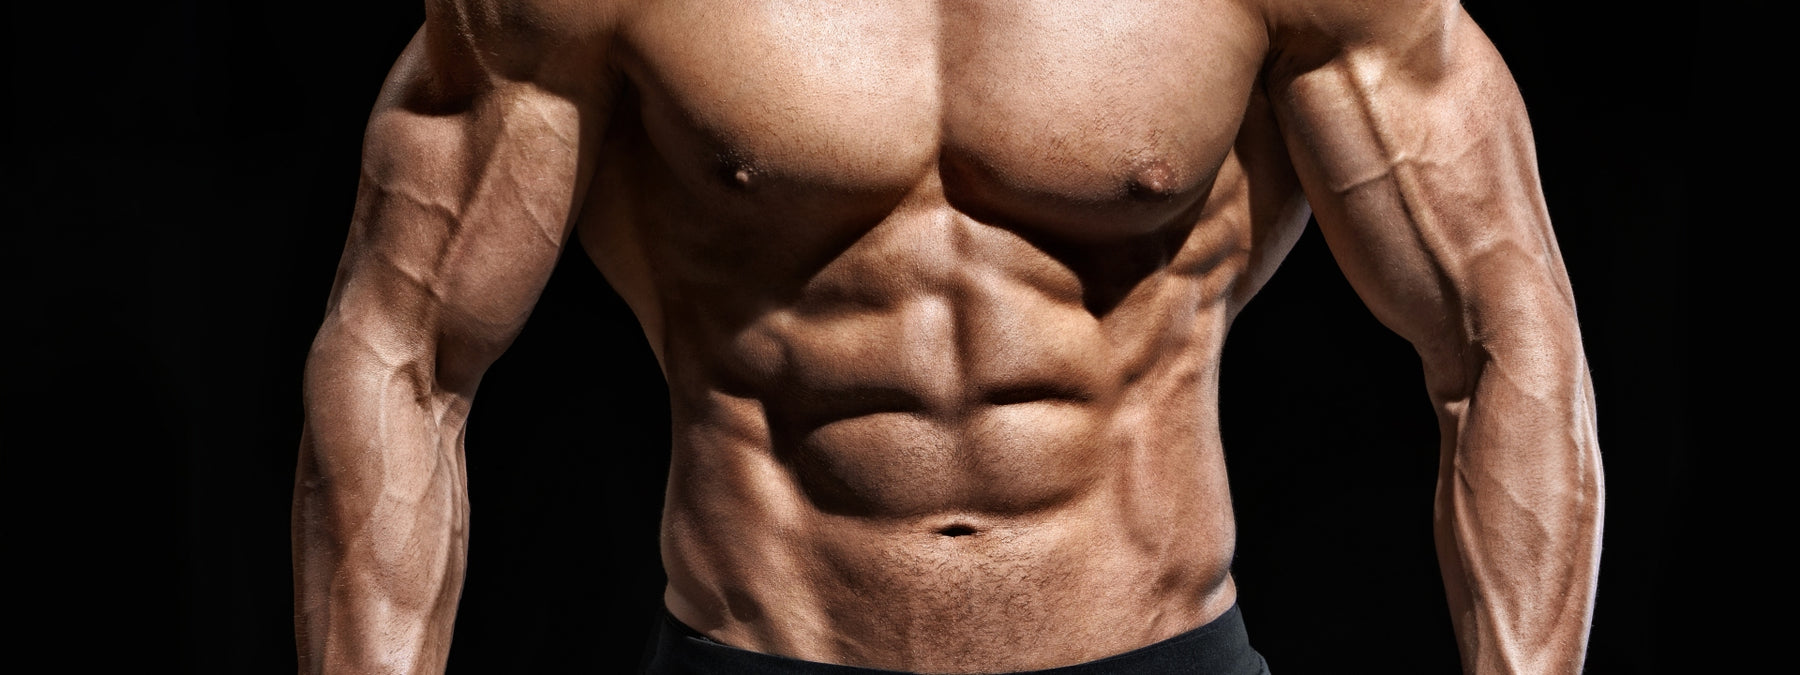 How to Get a Six Pack - 5 Things You Must Know